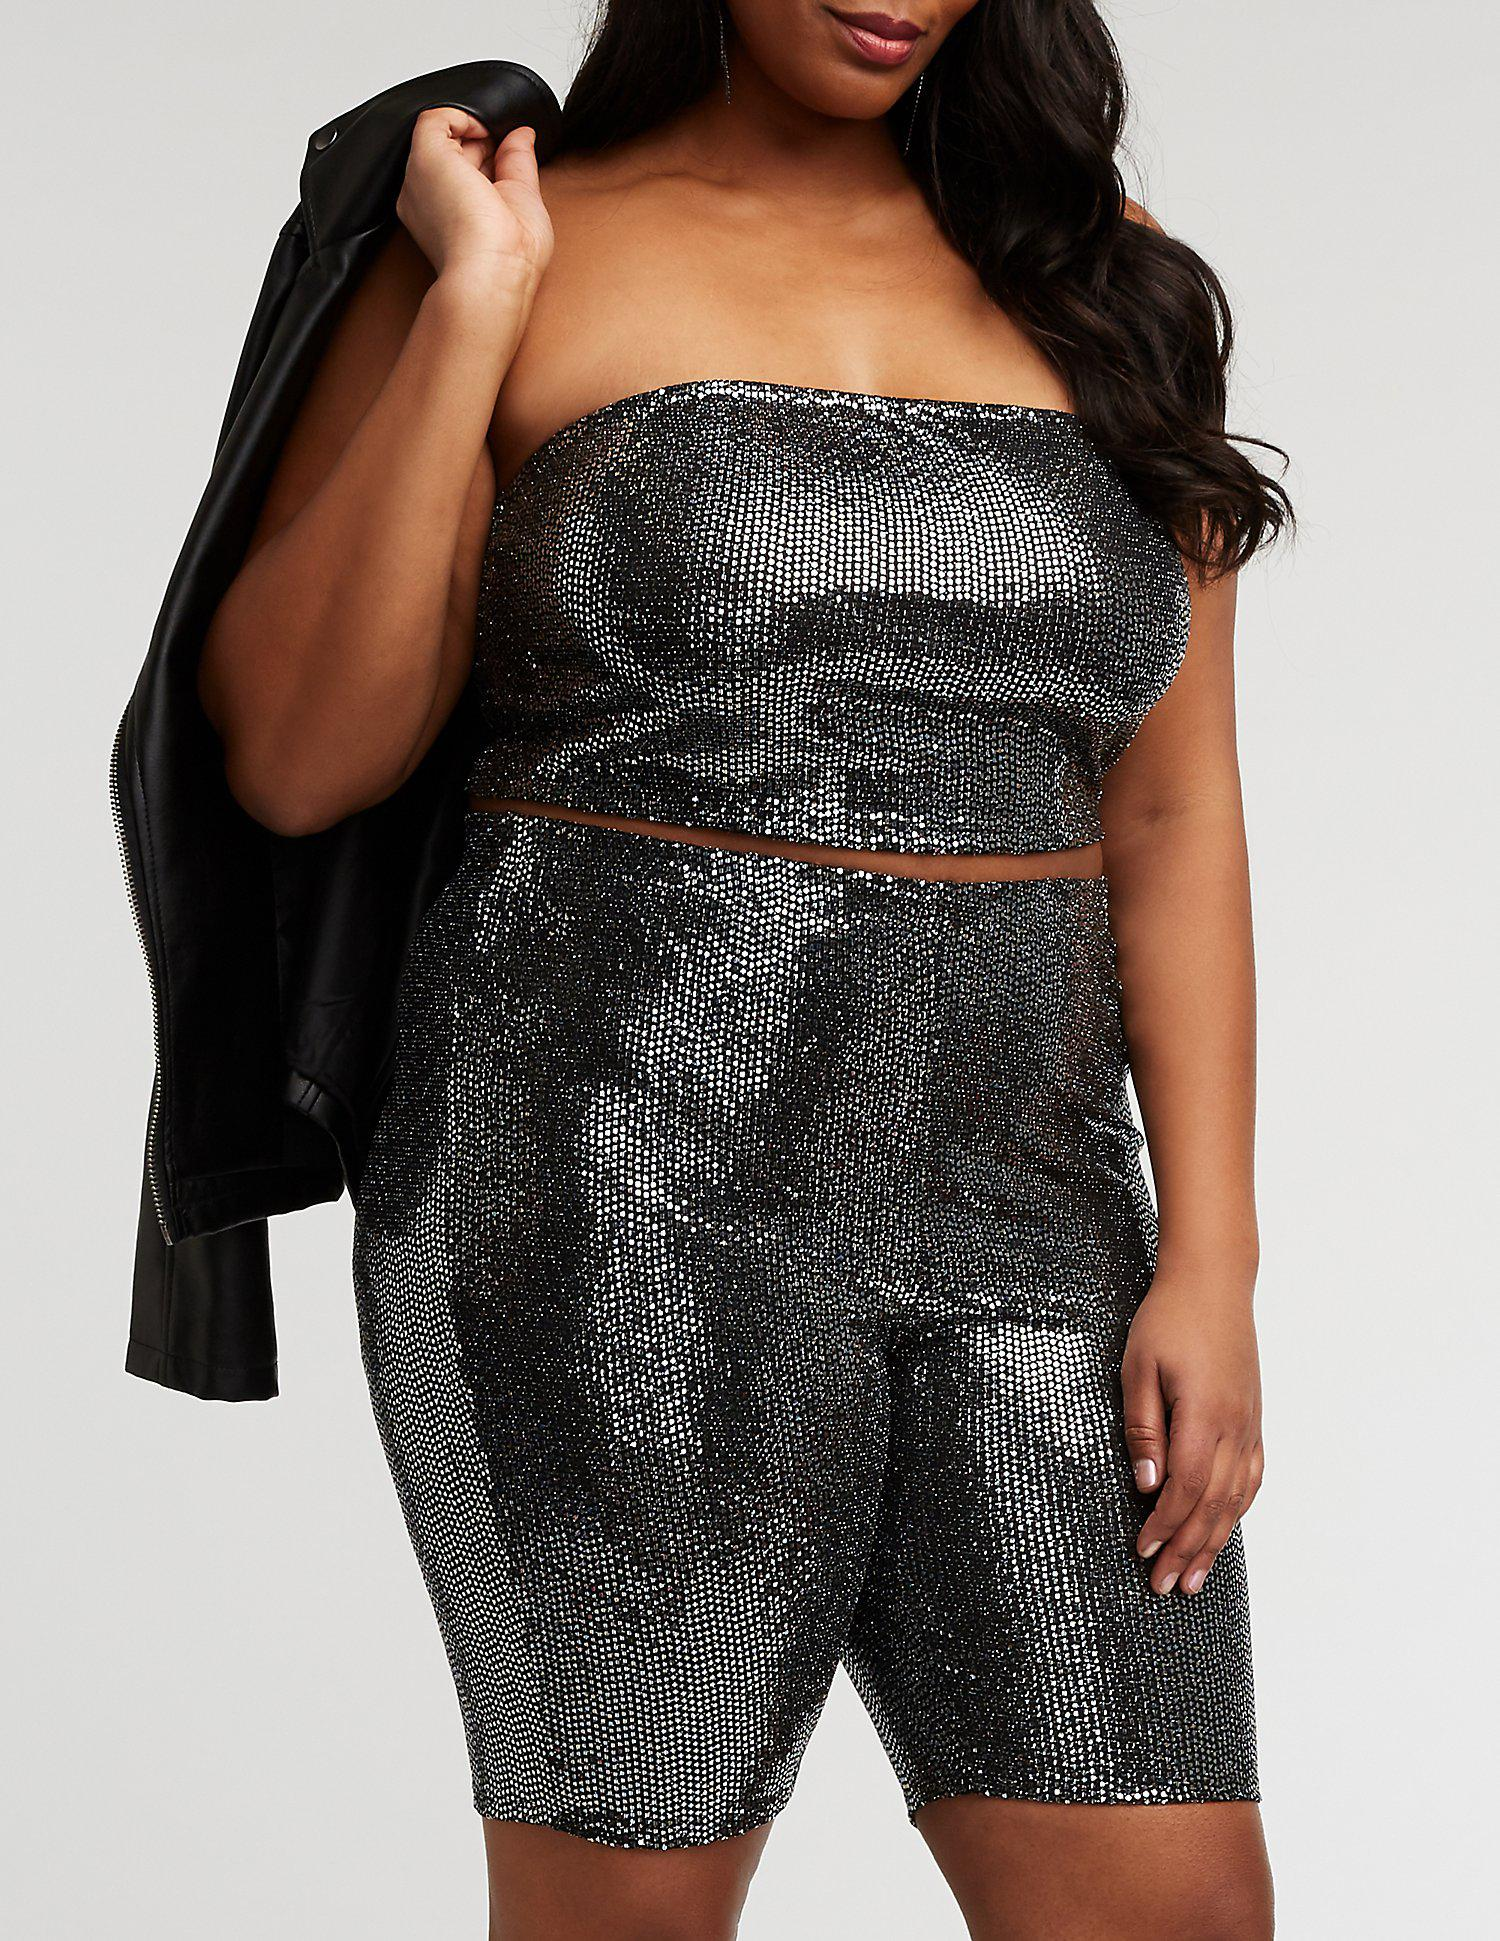 2246b0160e8 Lyst - Charlotte Russe Plus Size Sequin Tube Top in Black - Save ...